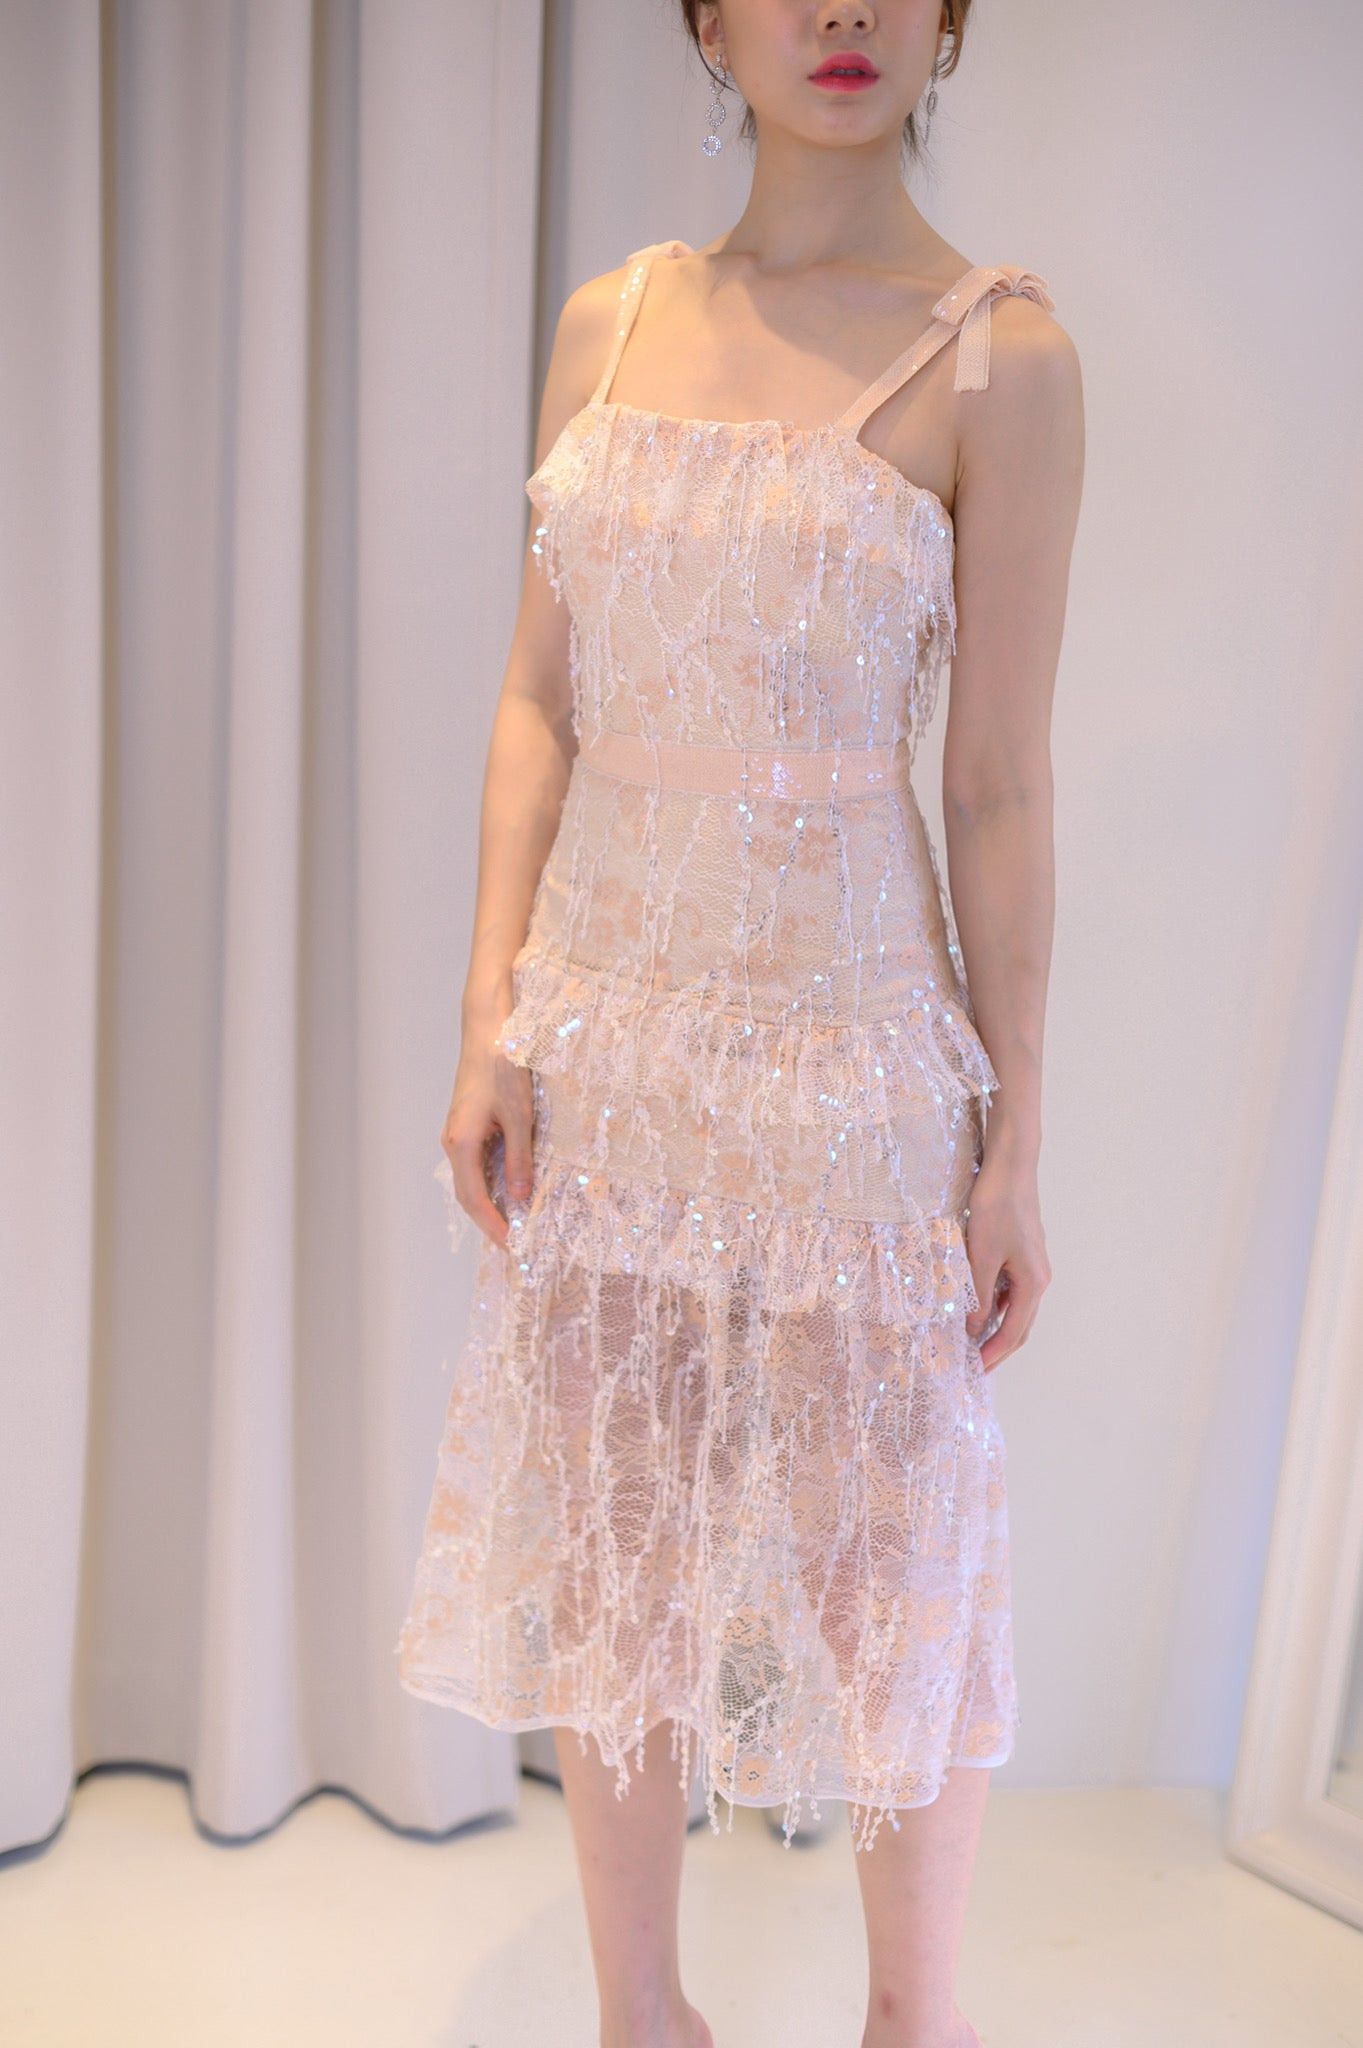 Peachy Lace Dress